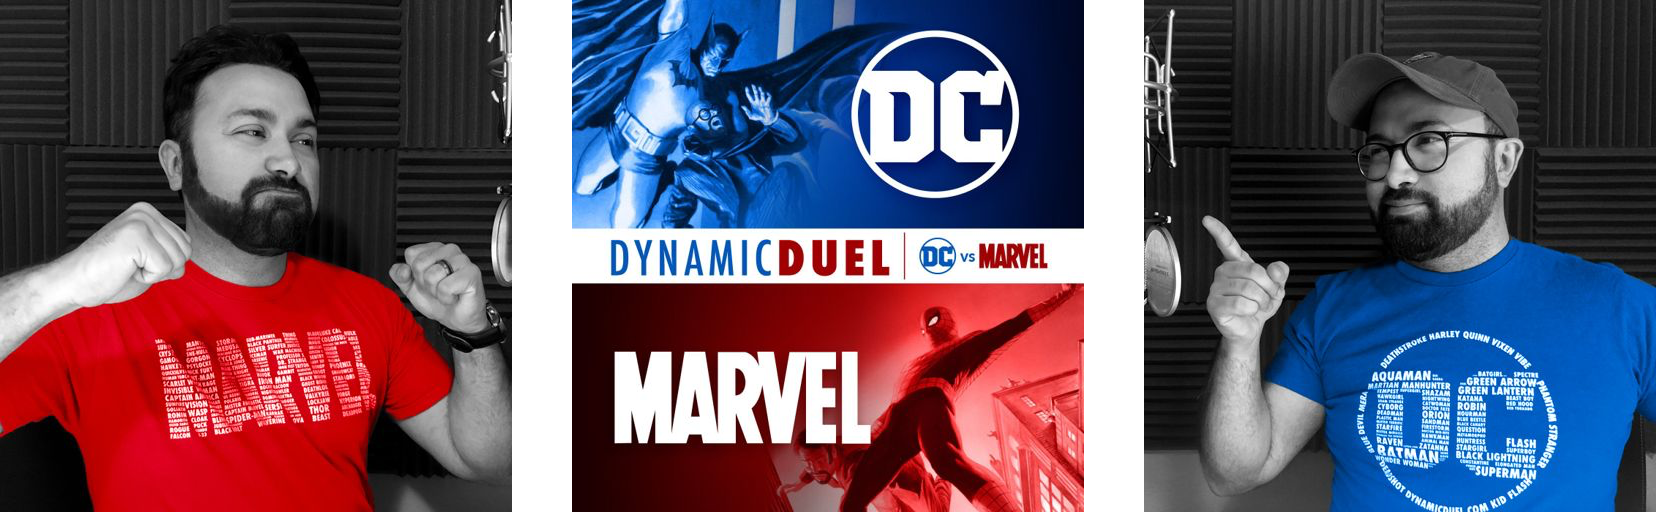 dynamic-duel-banner.png